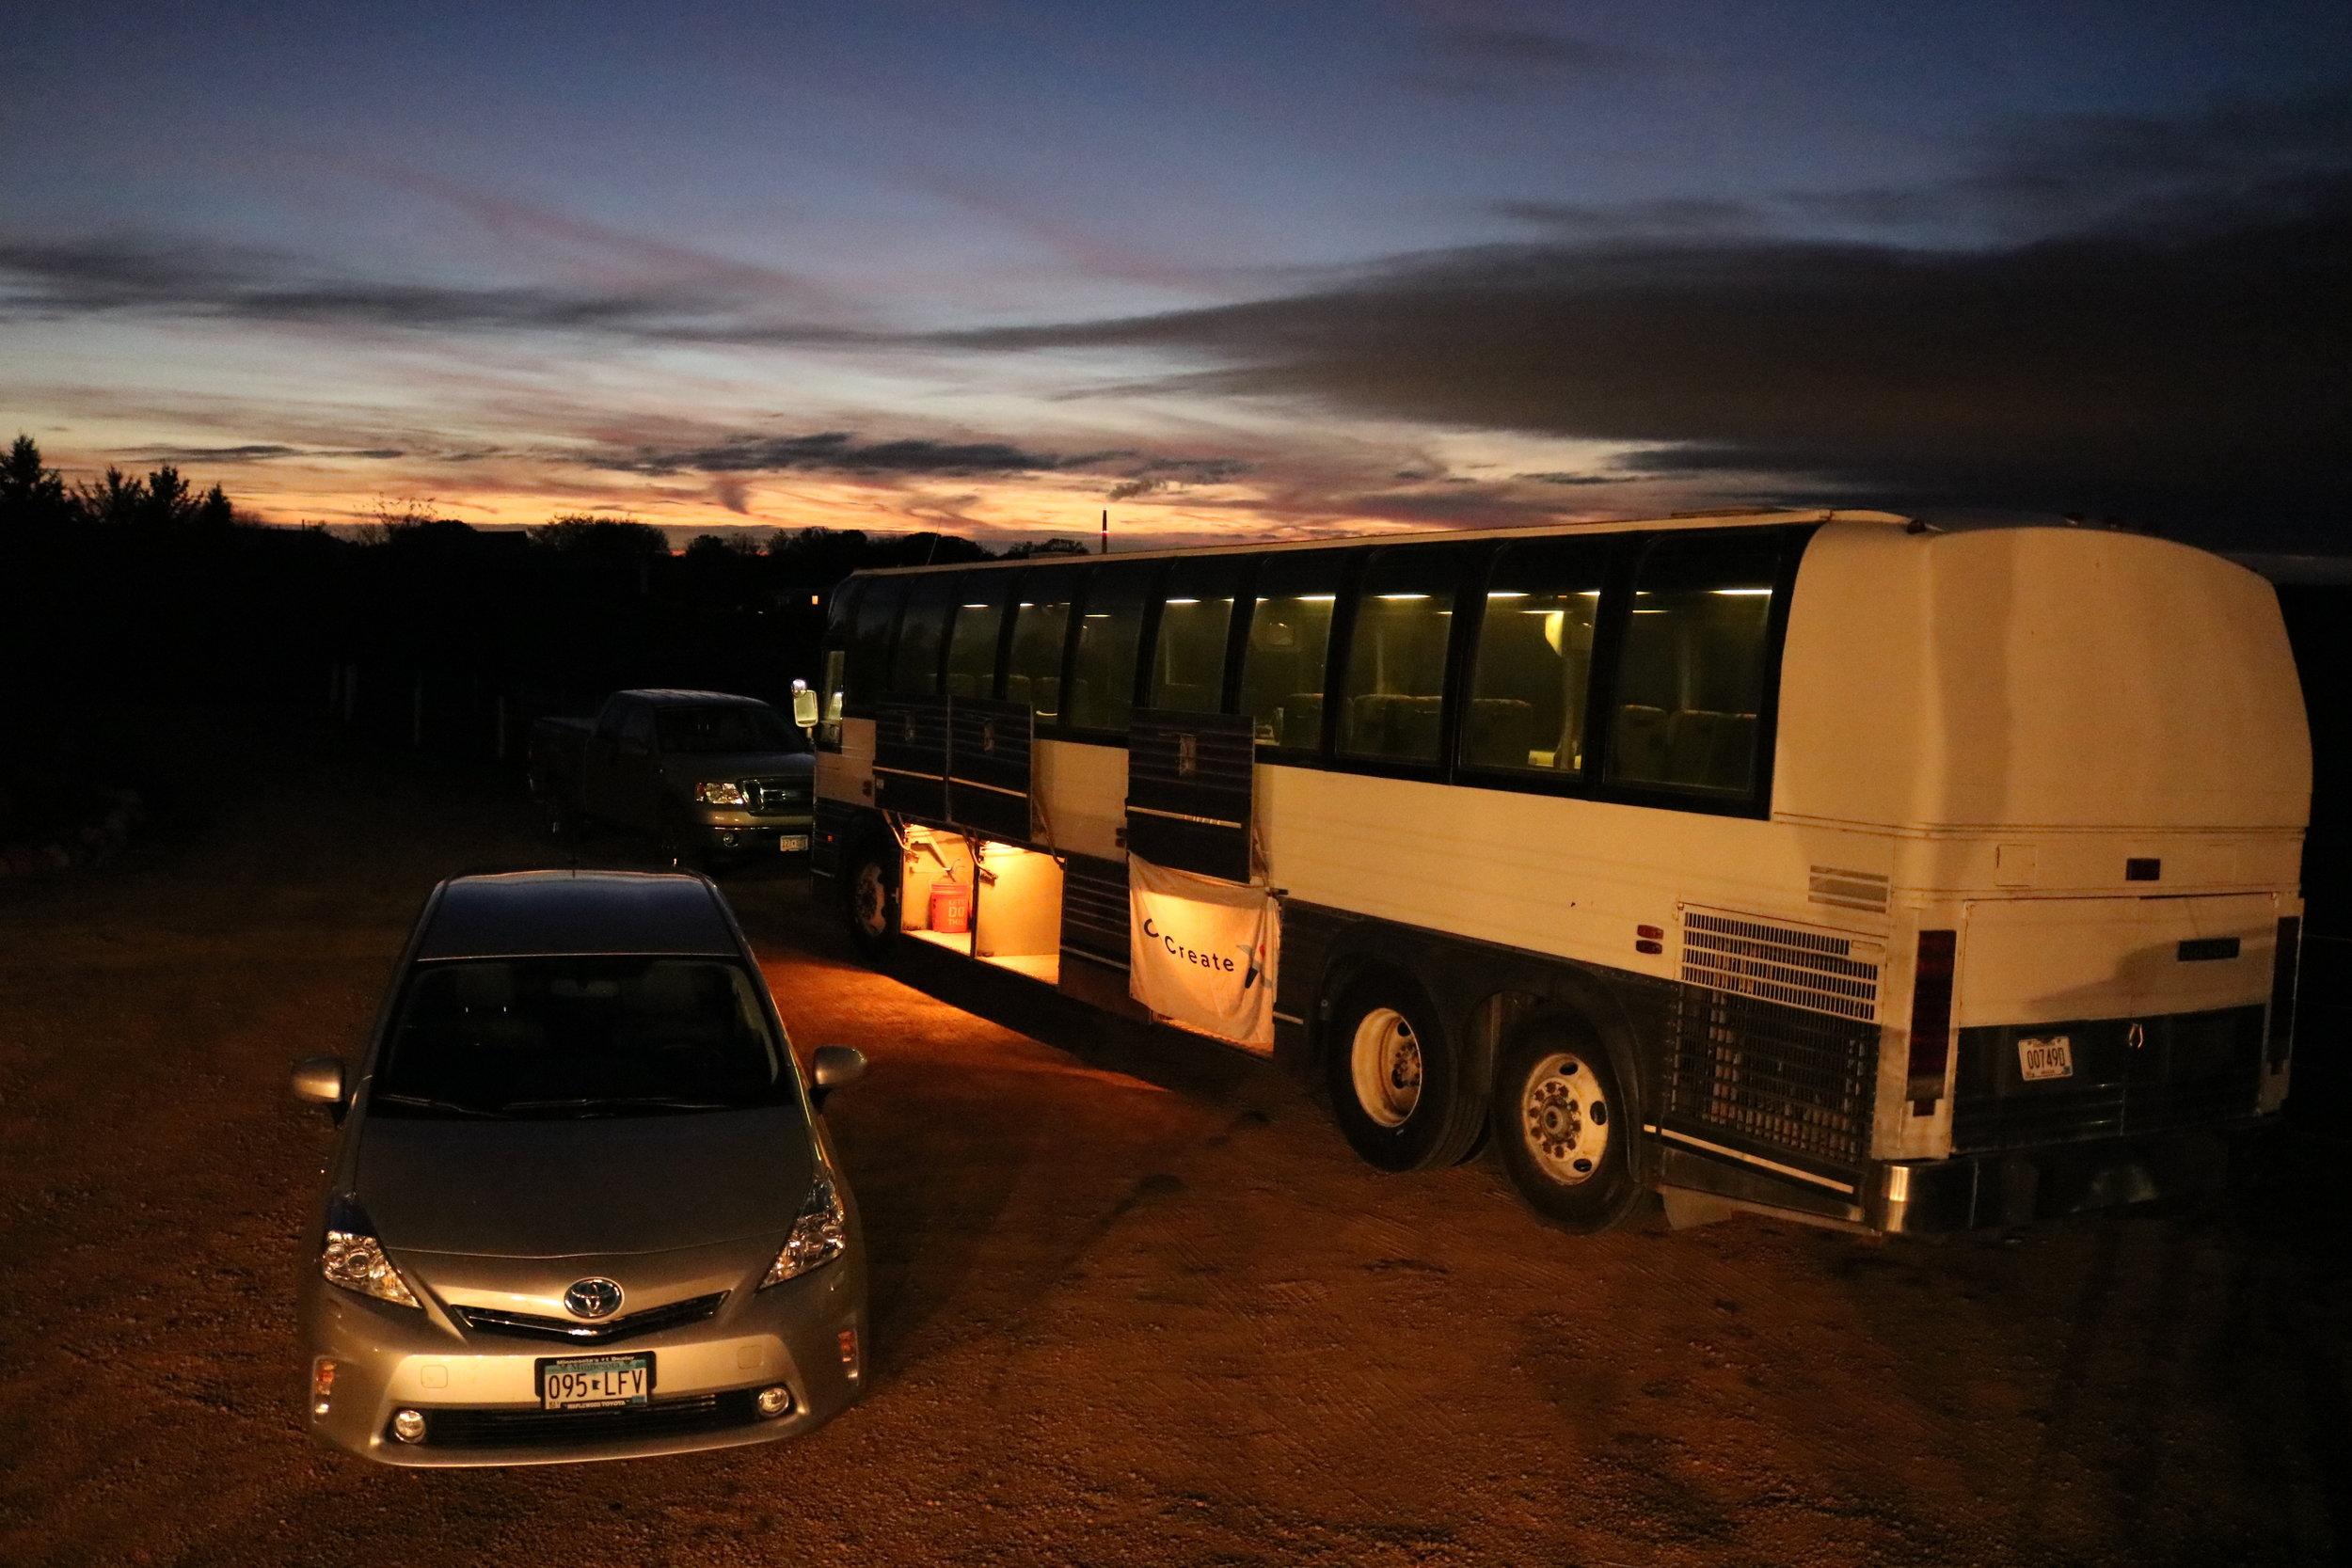 ccx bus at night with car.JPG